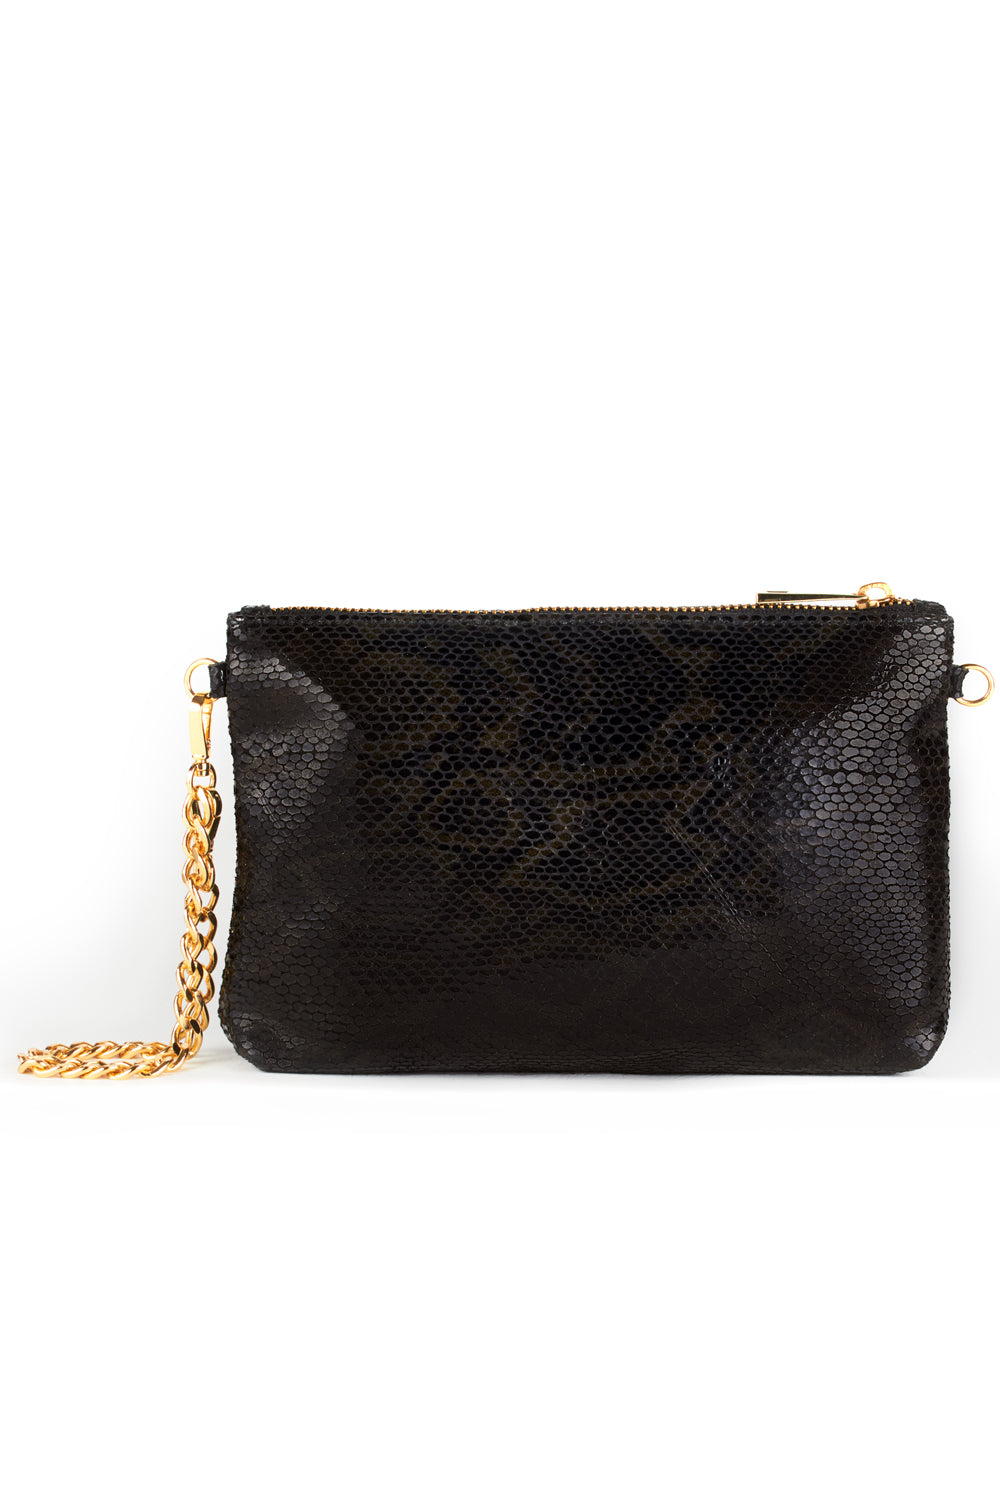 Mel Boteri | Black, Metallic Snake-Effect Leather 'Kat' Pouch | Front